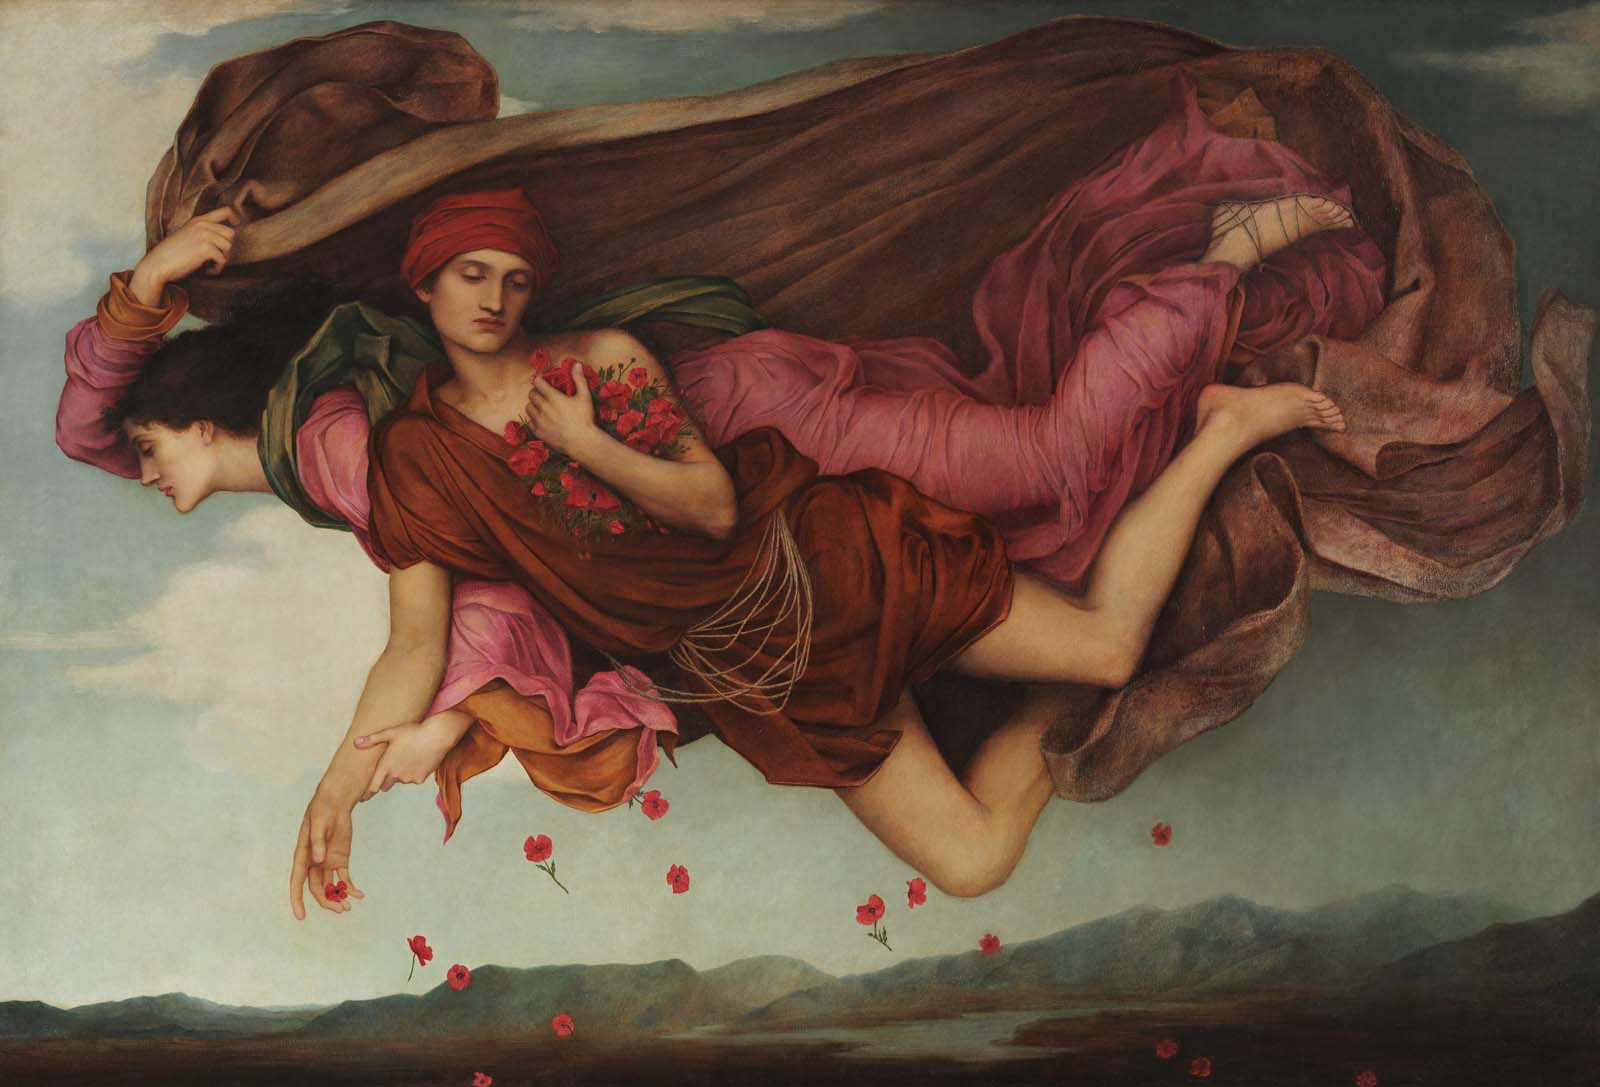 painting of two figures floating across a sky filled with poppy petals